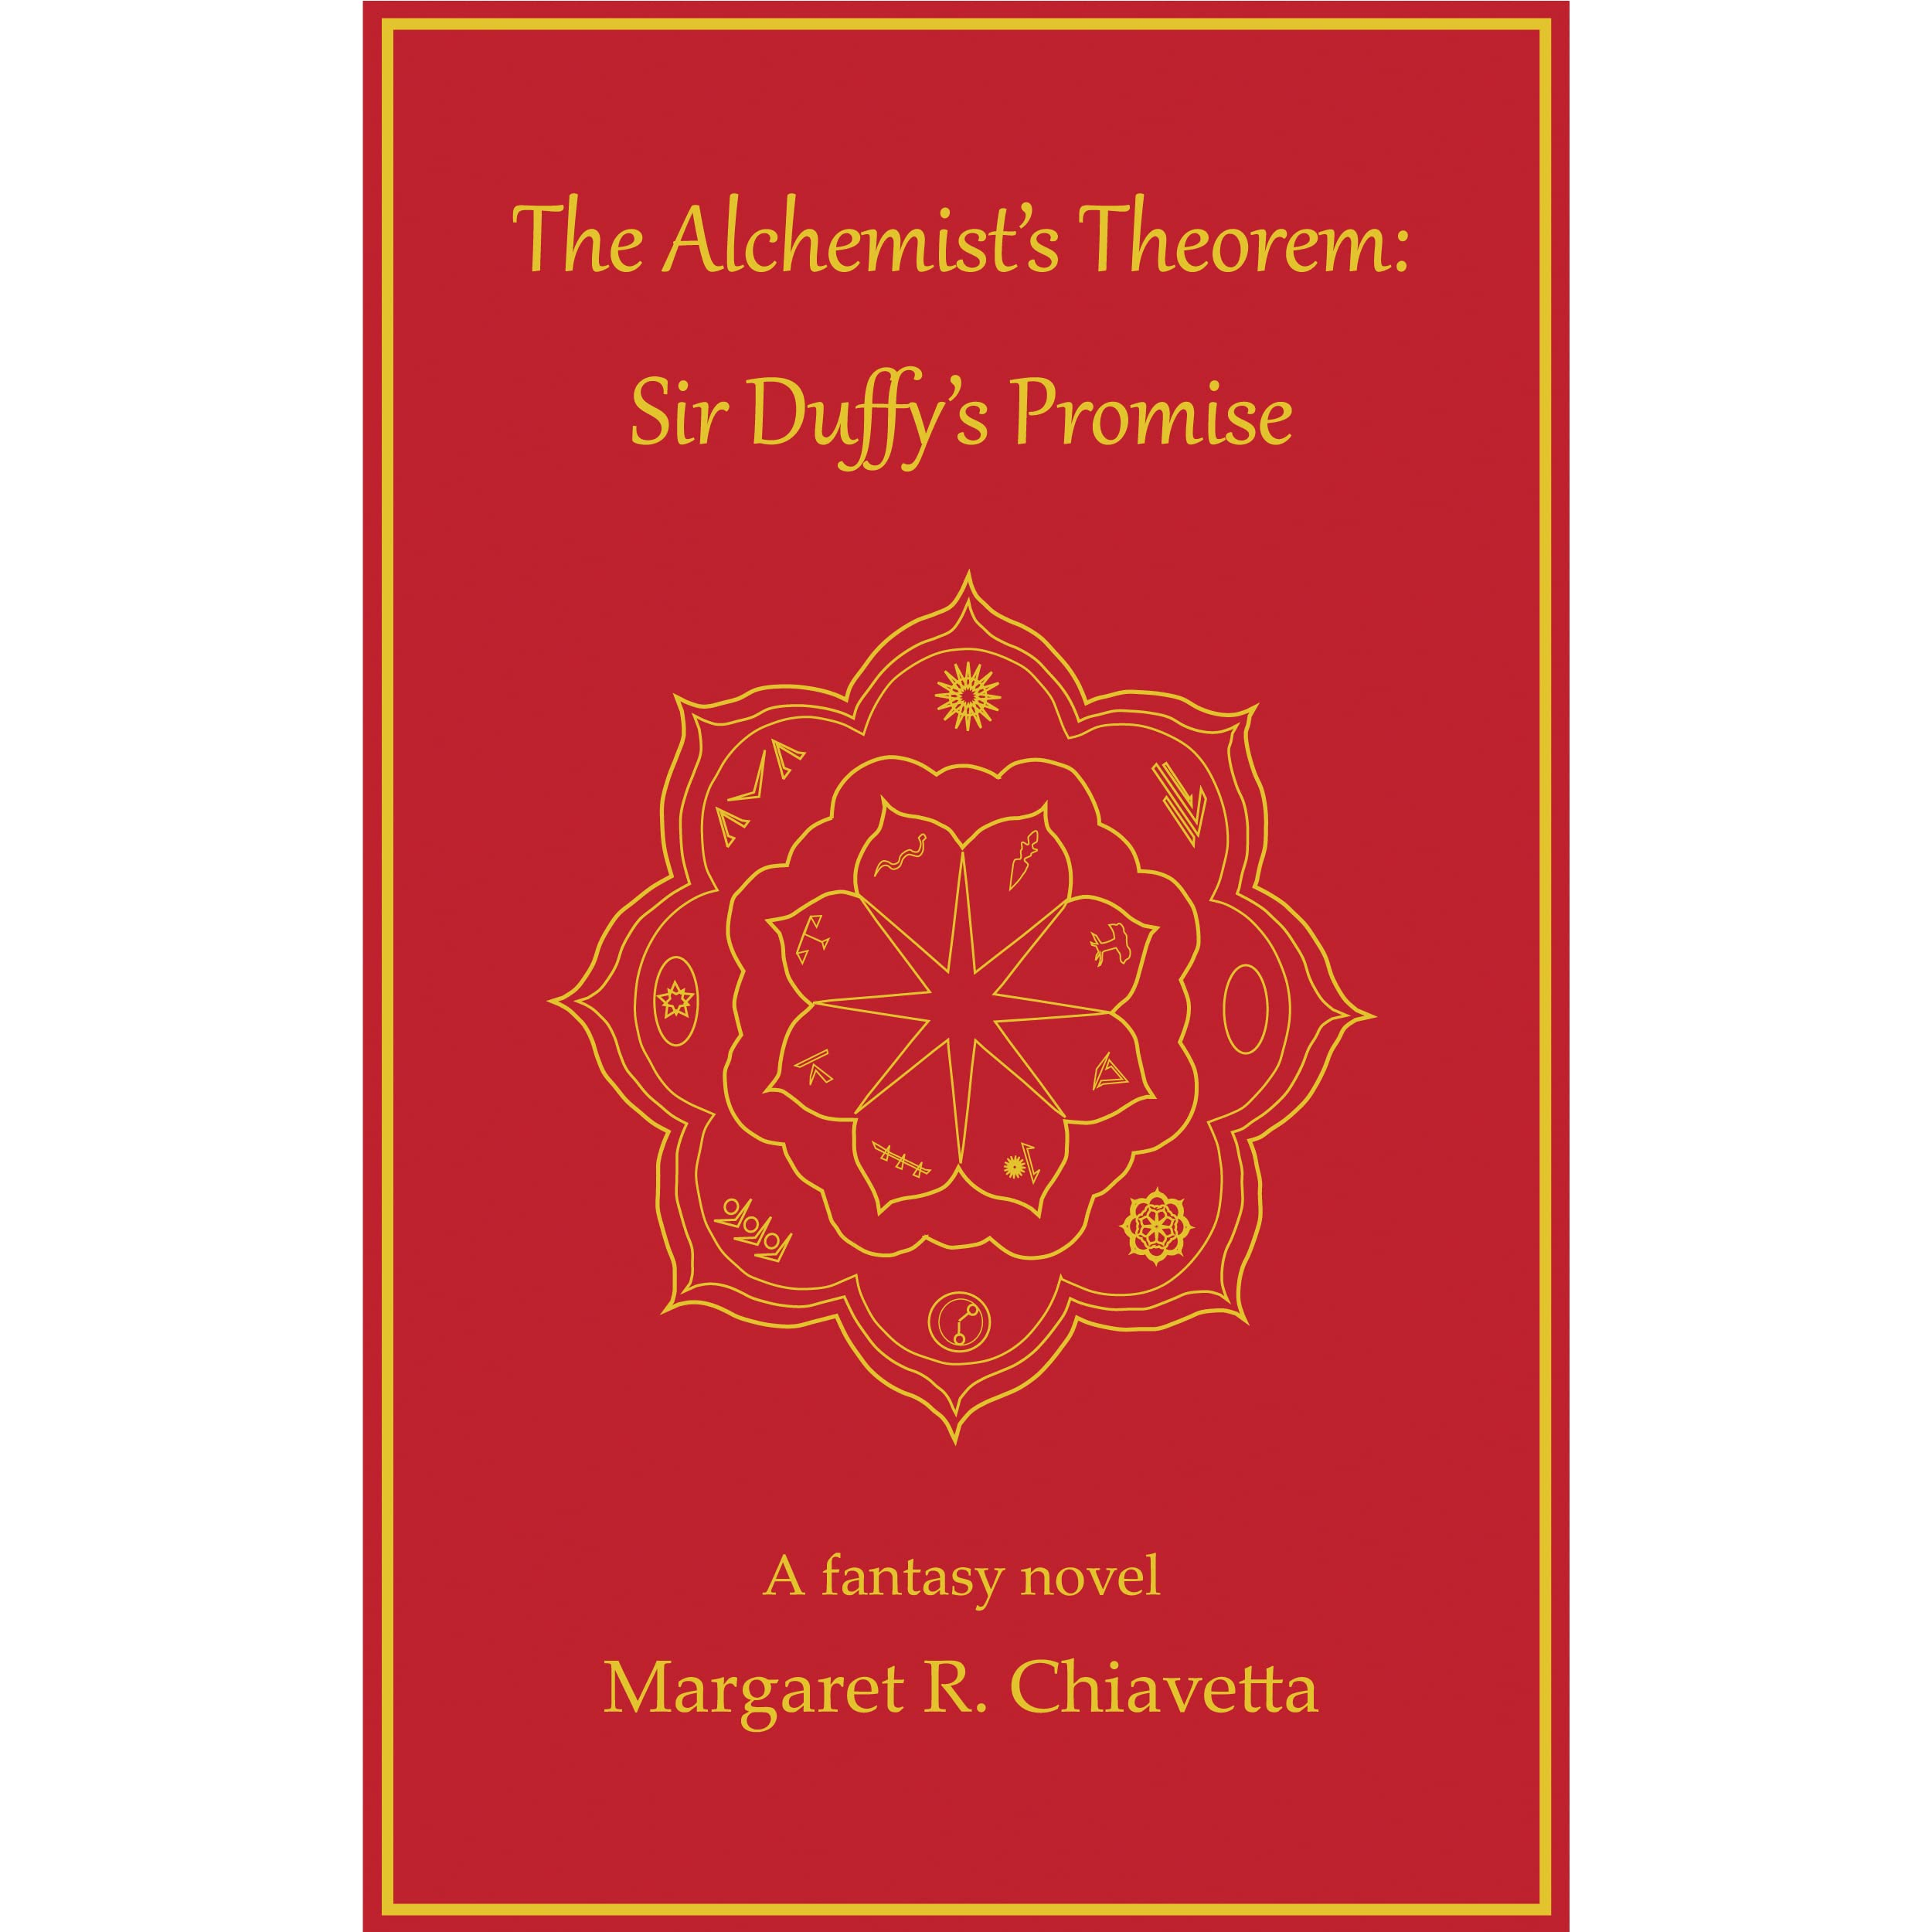 review of the alchemist book best ideas about the alchemist review  sir duffy s promise the alchemist s theorem book by margaret sir duffy s promise the